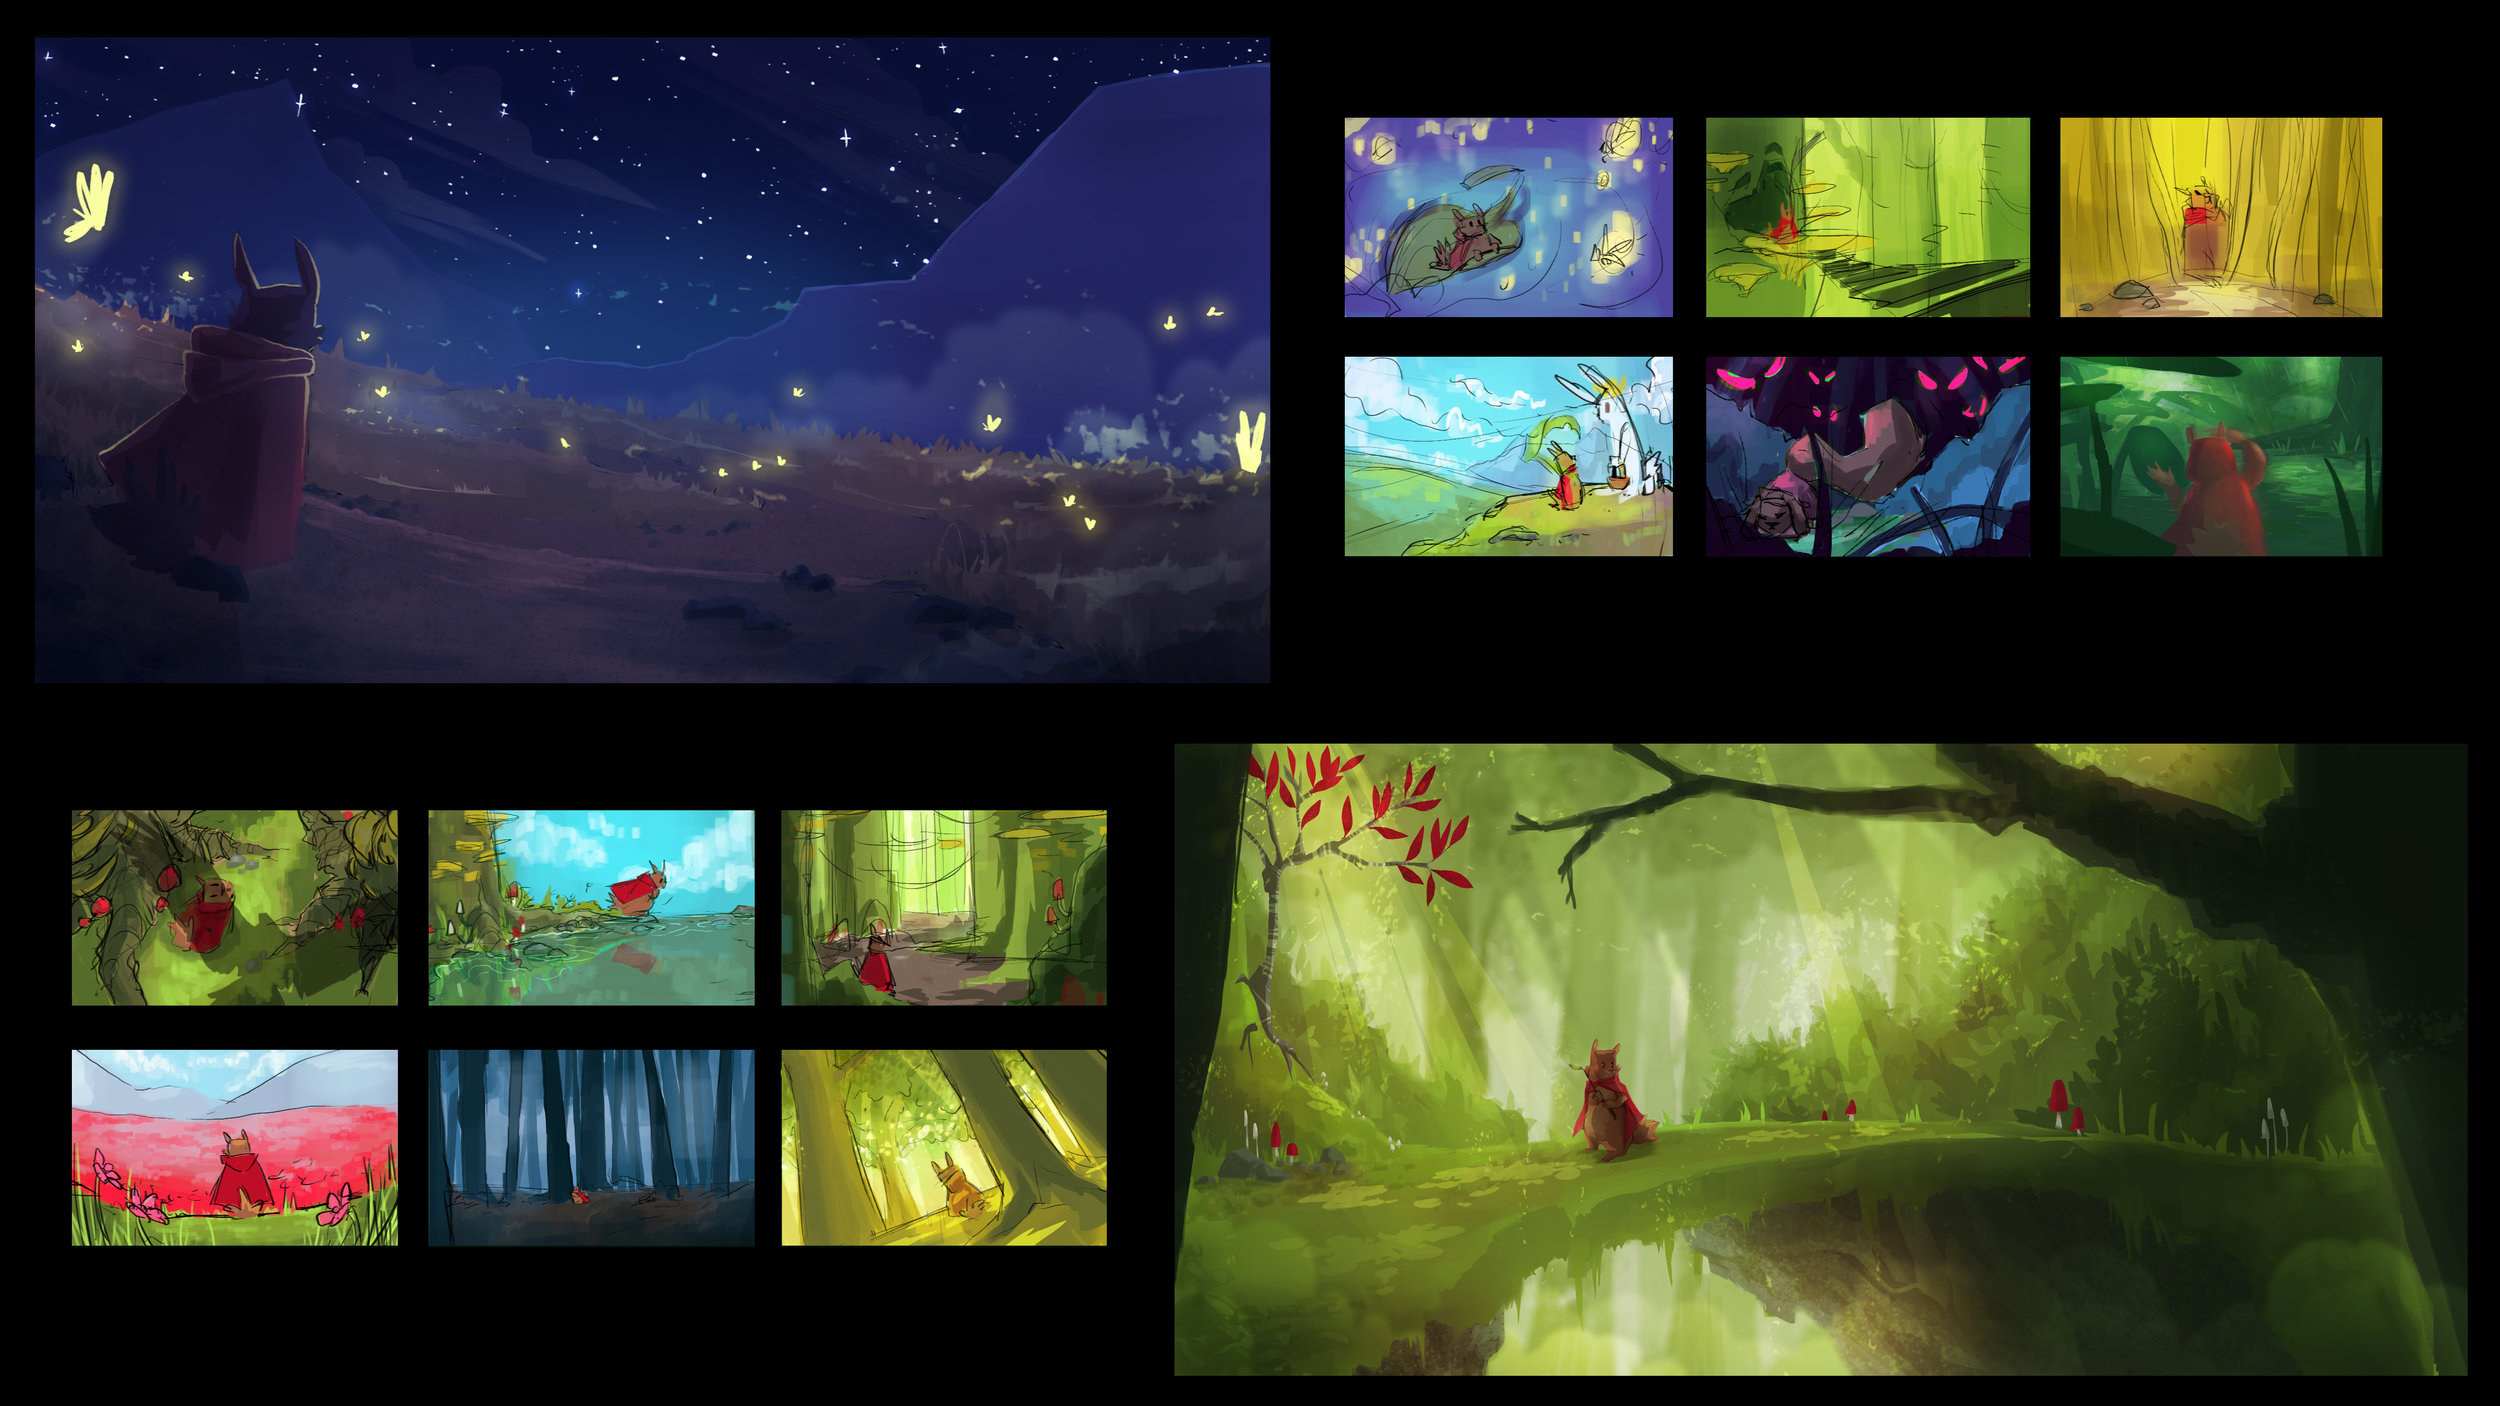 Color keys and environment paintings for thesis project. Programs: Photoshop